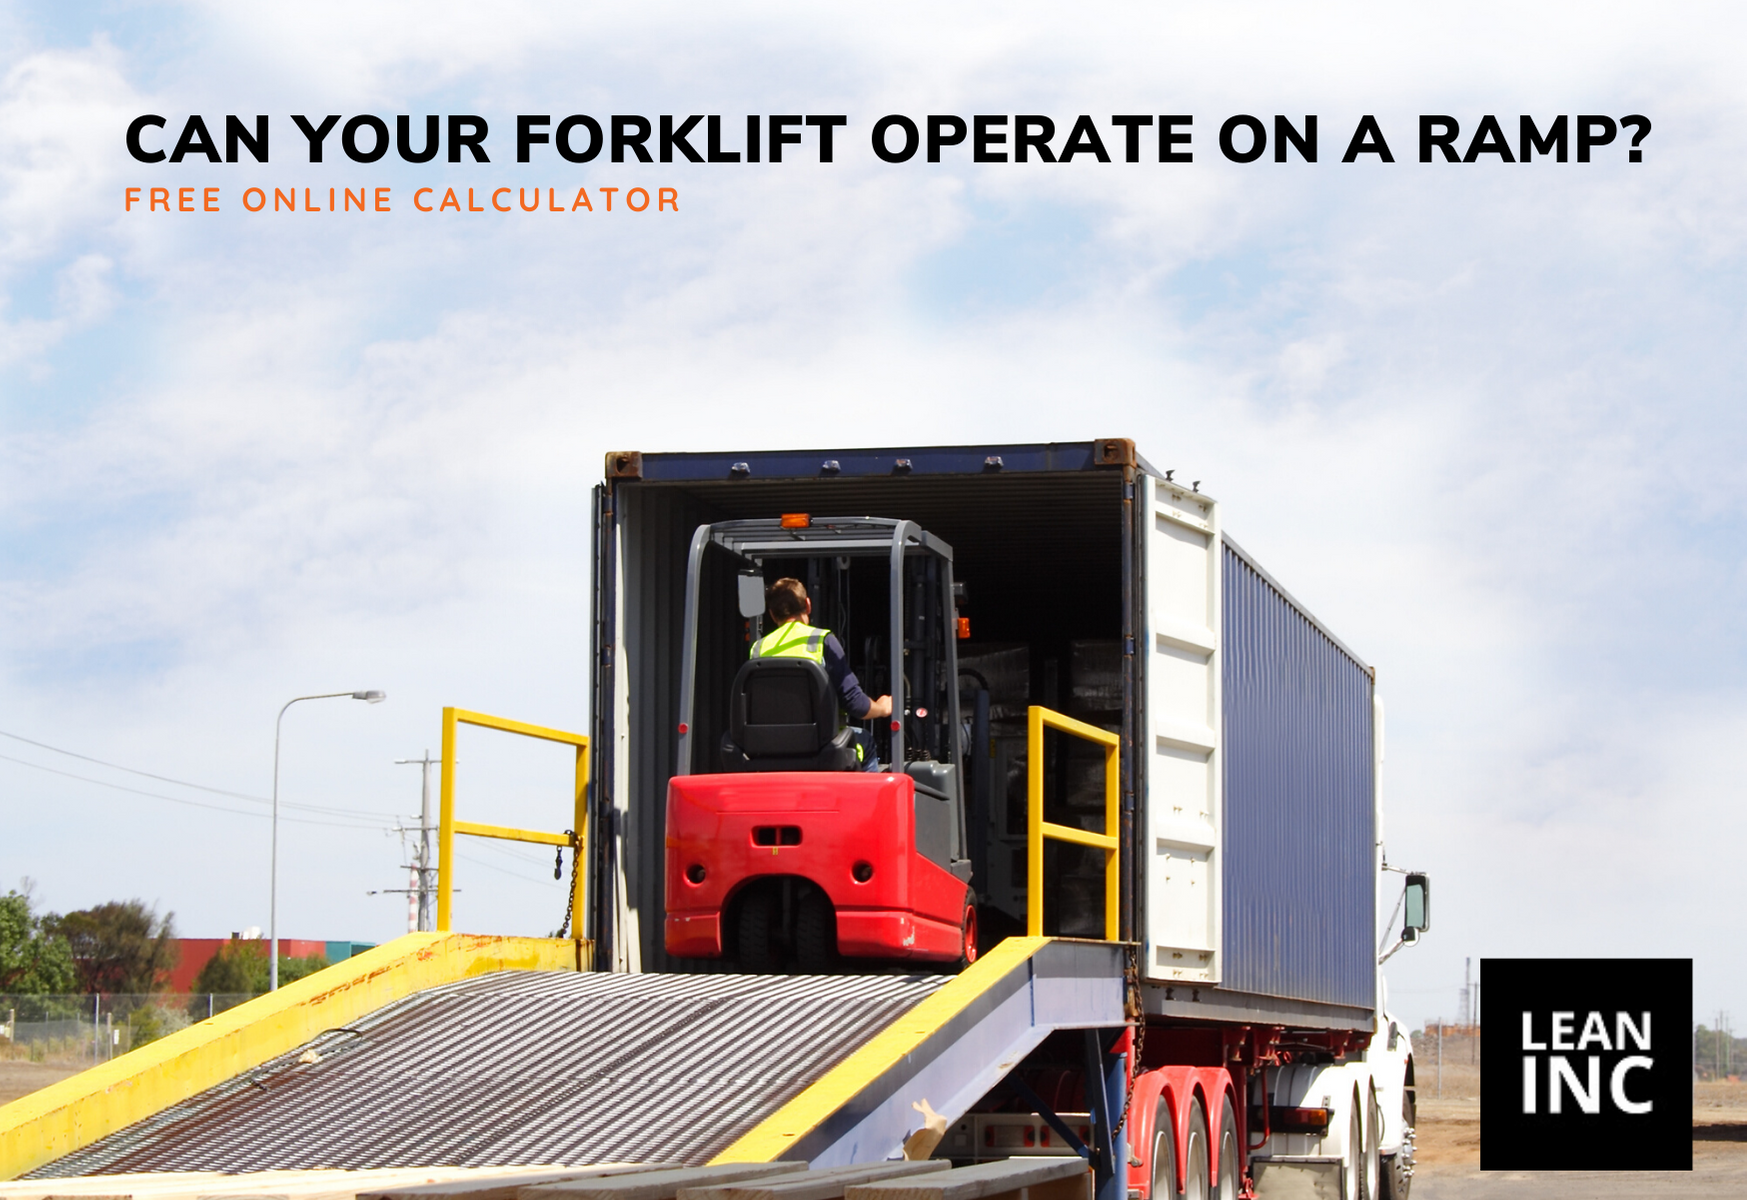 CALCULATOR FOR FORKLIFTS OPERATING ON A RAMP